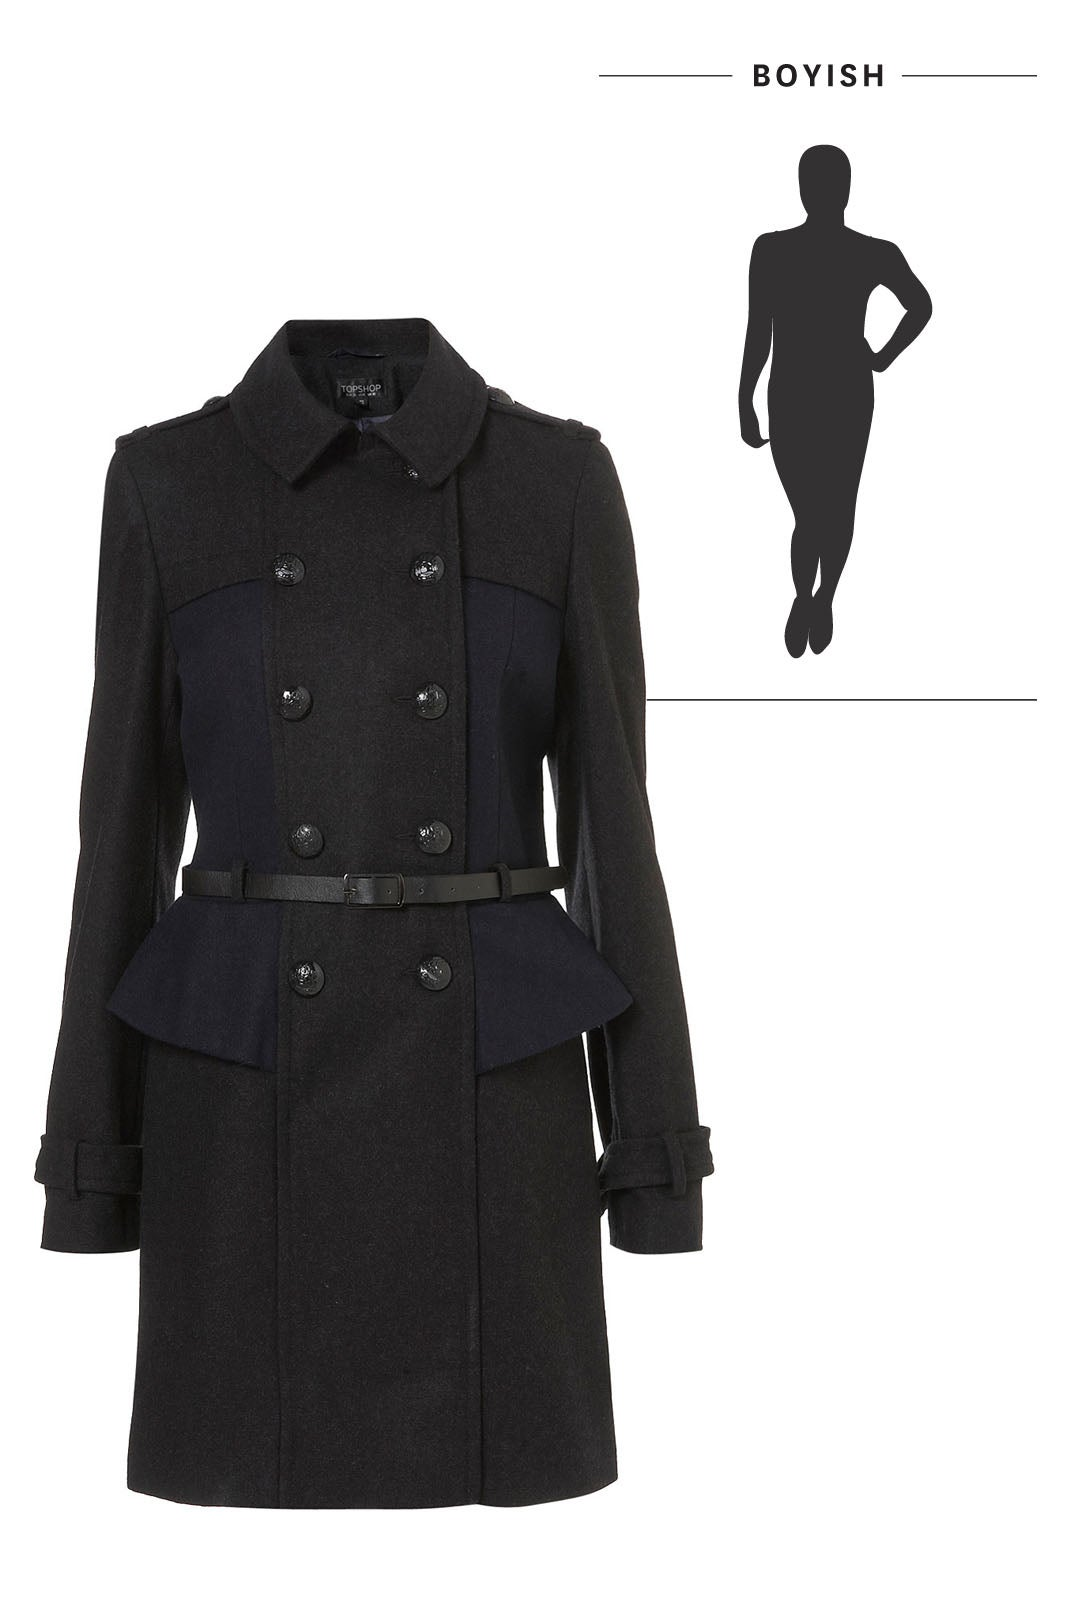 Shop Your Shape: The Most Flattering Coats for Your Body Type picture